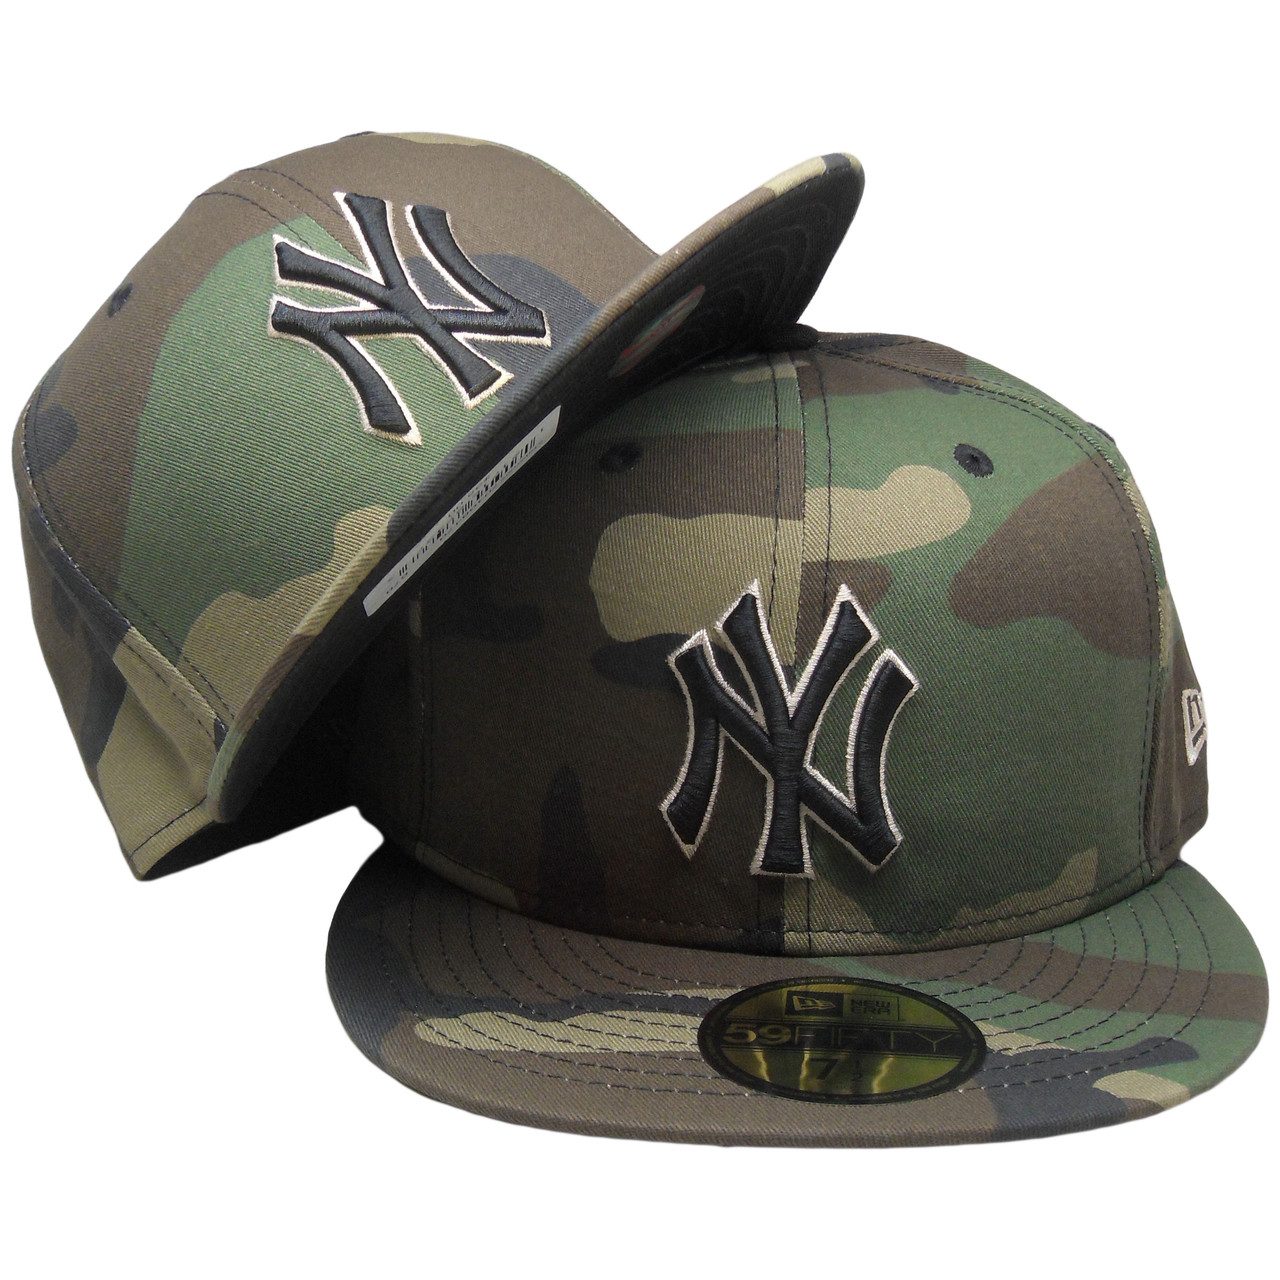 e88e3dd94096d4 New York Yankees New Era Custom 59Fifty Fitted Hat - Camouflage, Black,  Beige - ECapsUnlimited.com